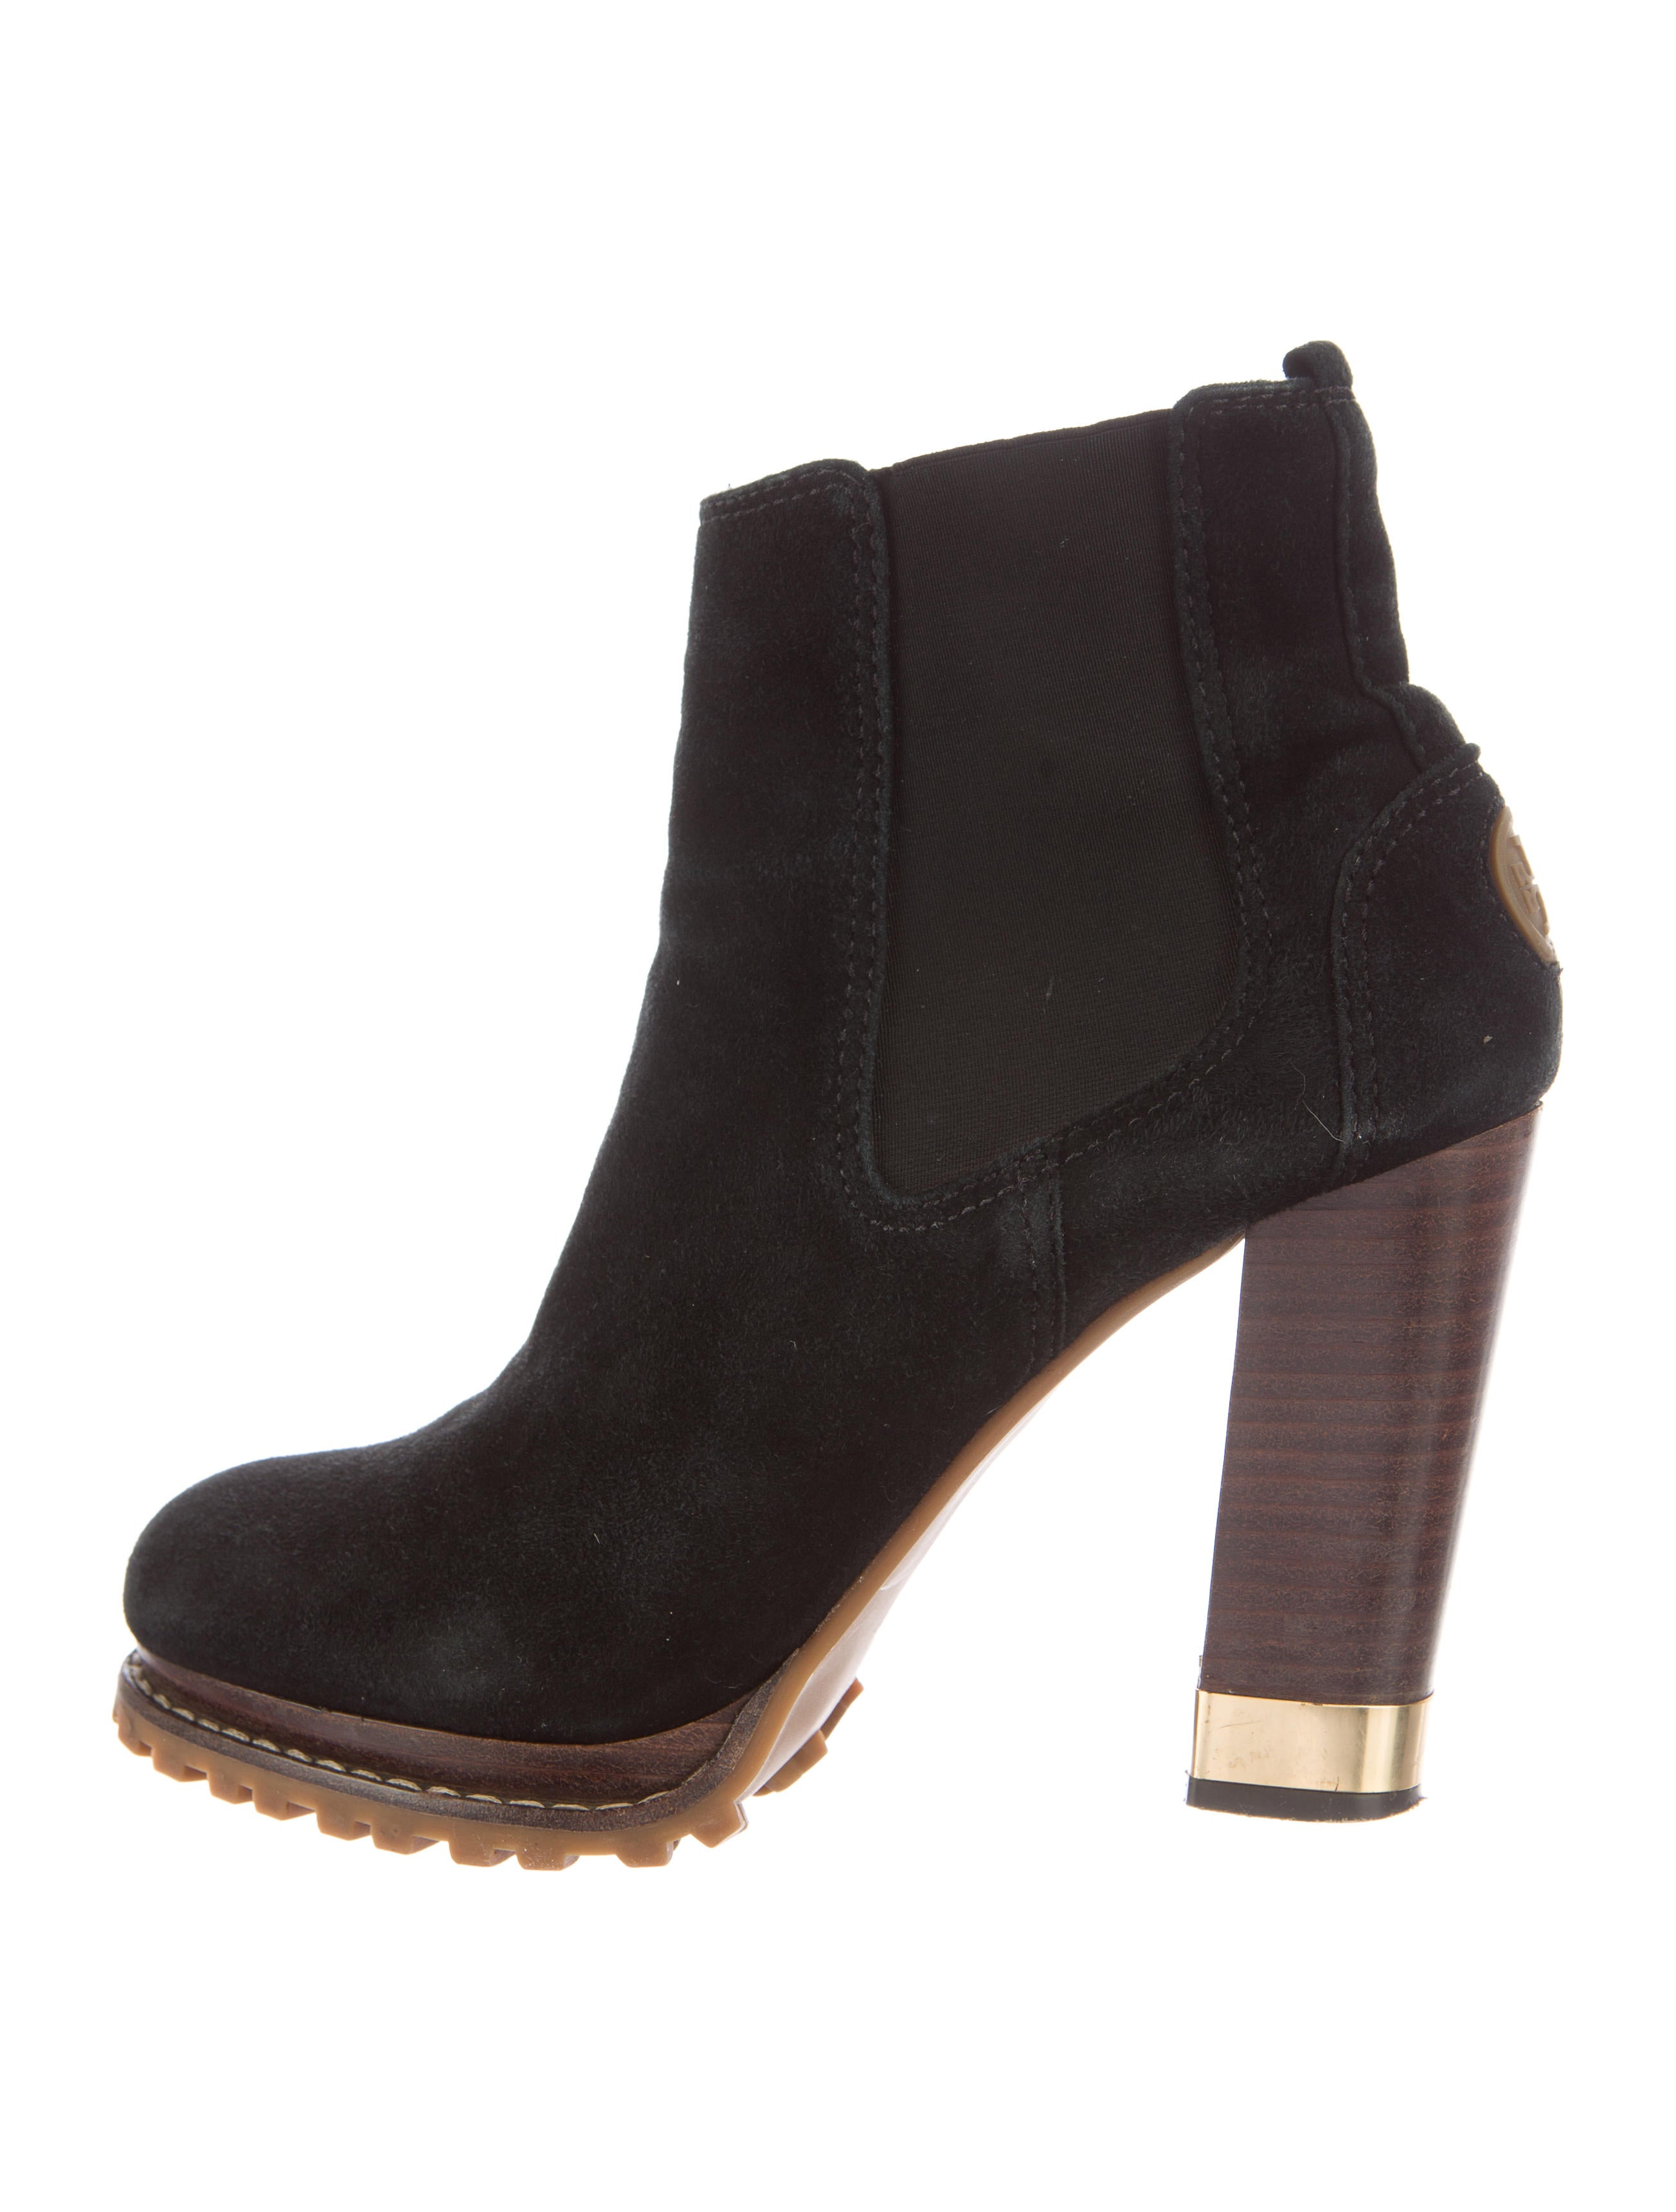 burch suede ankle boots shoes wto101813 the